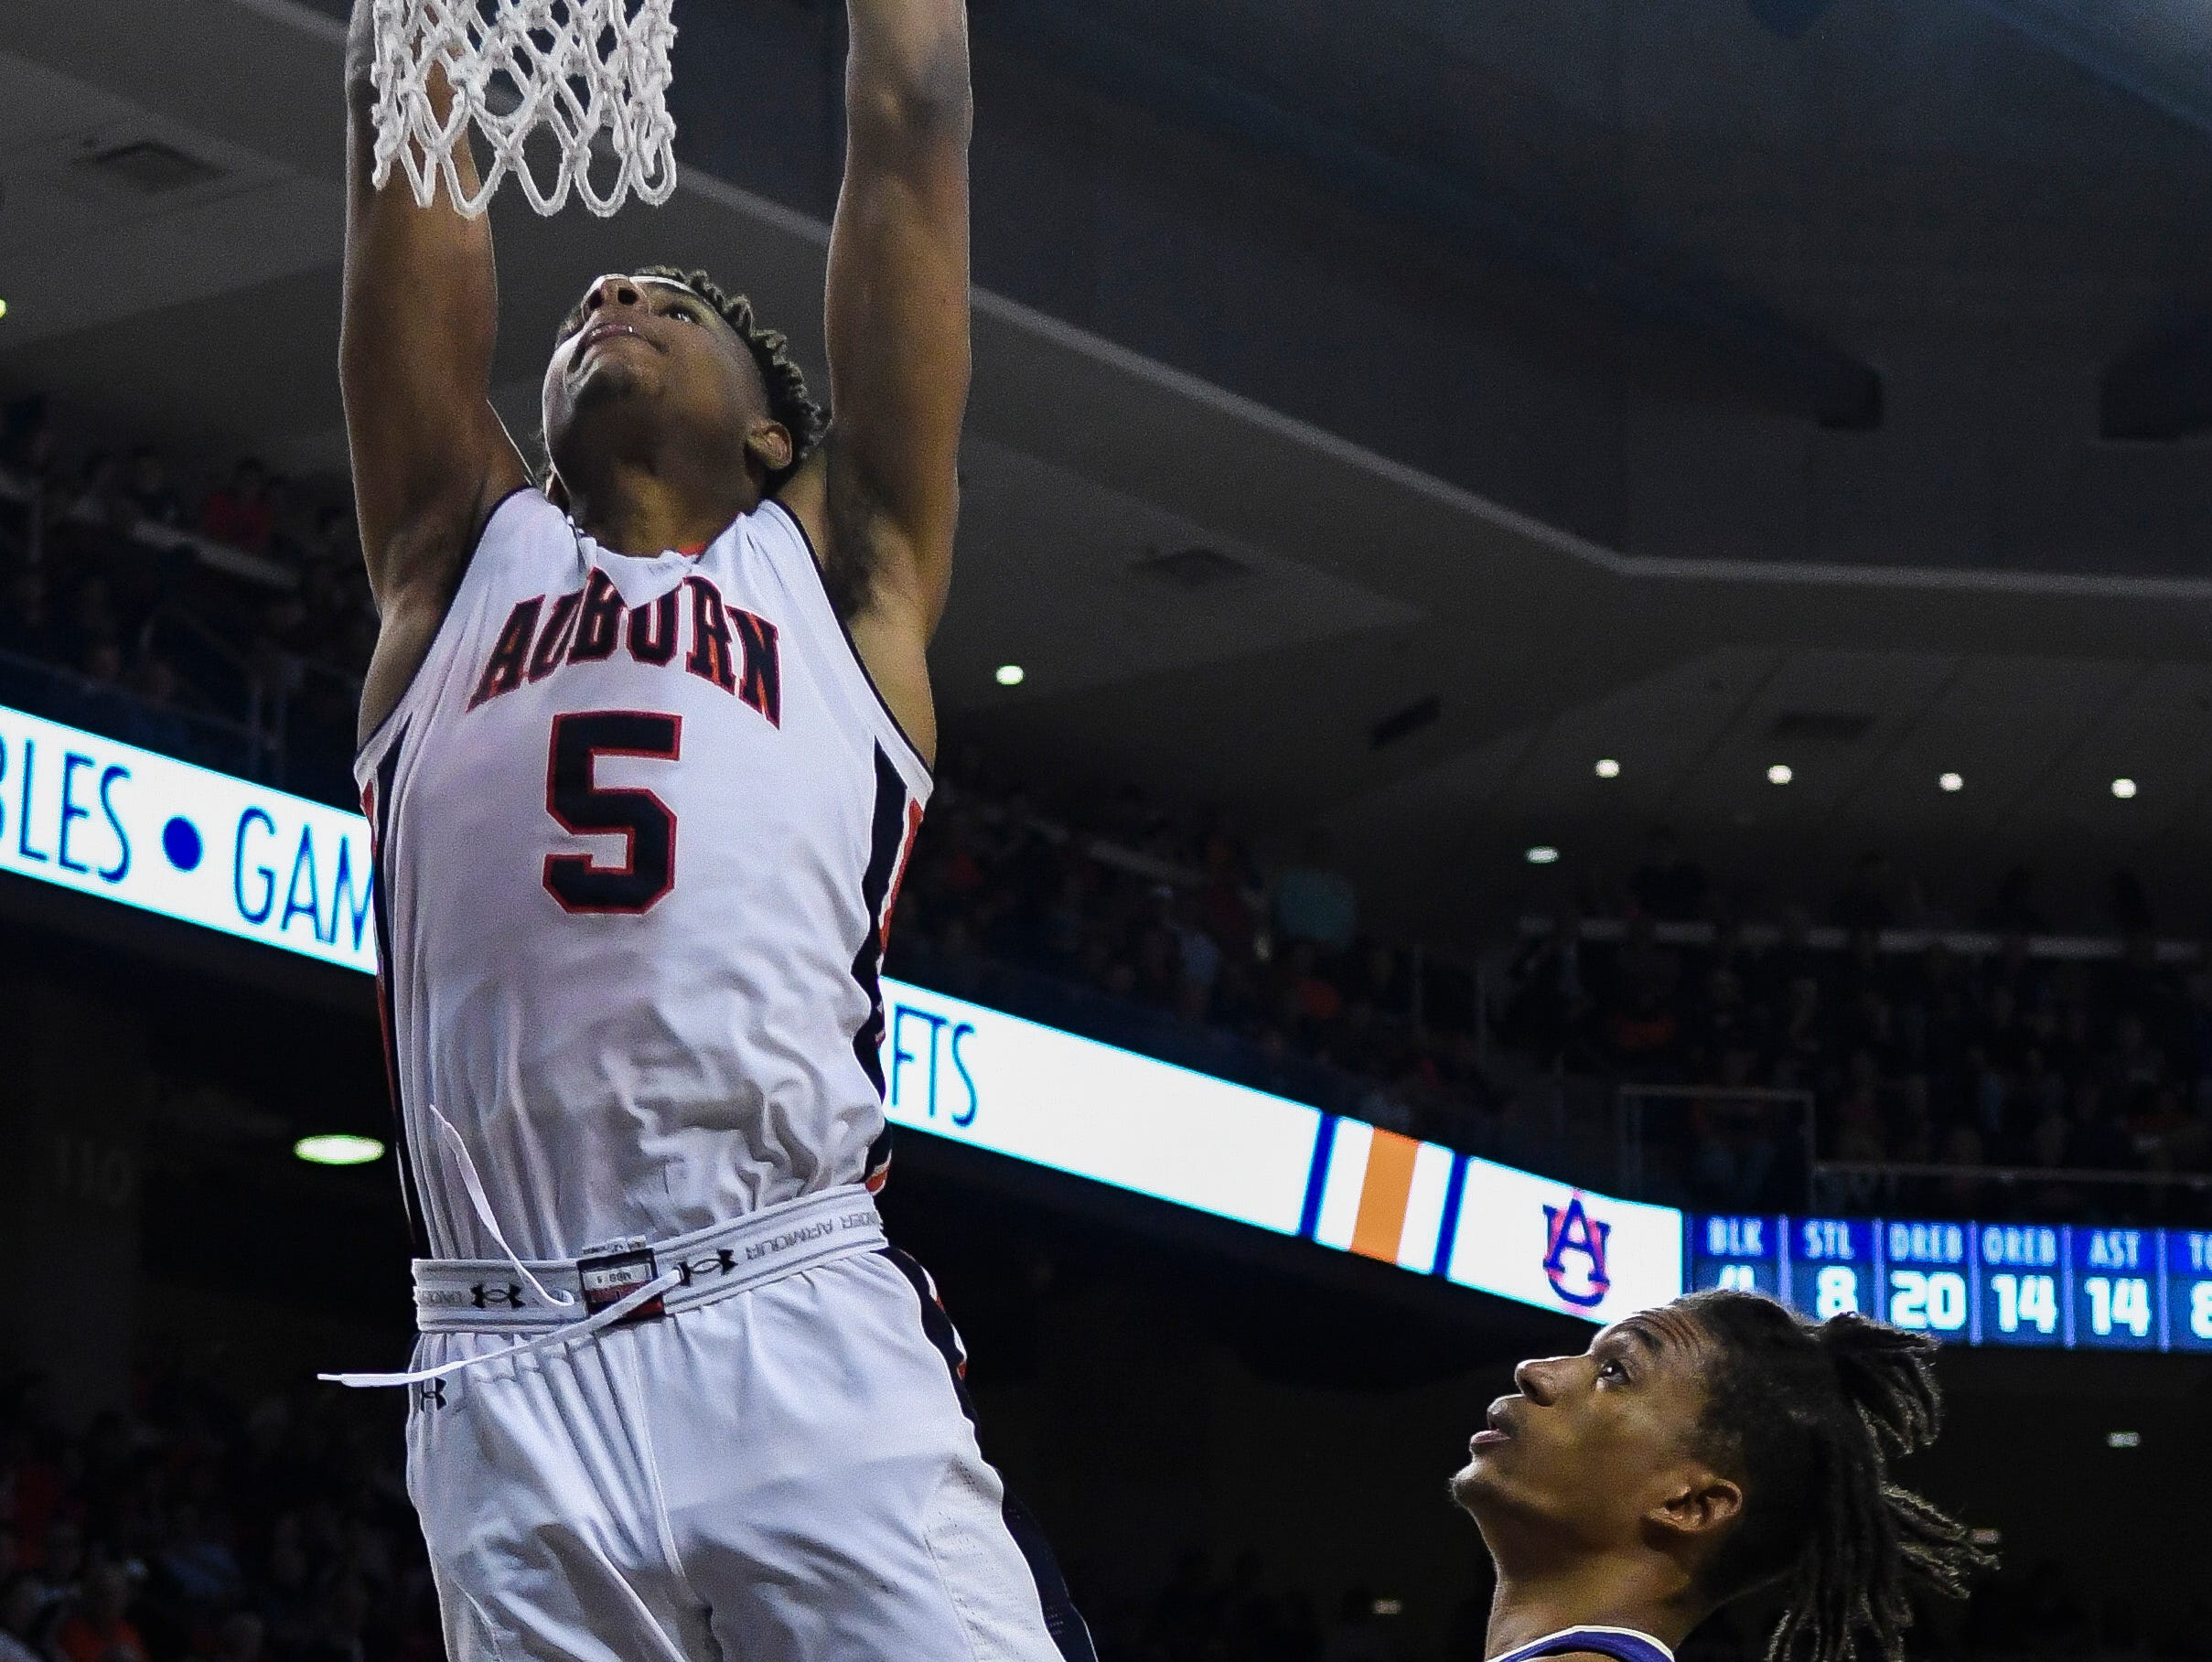 Nov 9, 2018; Auburn, AL, USA; Auburn Tigers forward Chuma Okeke (5) dunks the ball against the Washington Huskies at Auburn Arena. Mandatory Credit: Julie Bennett-USA TODAY Sports